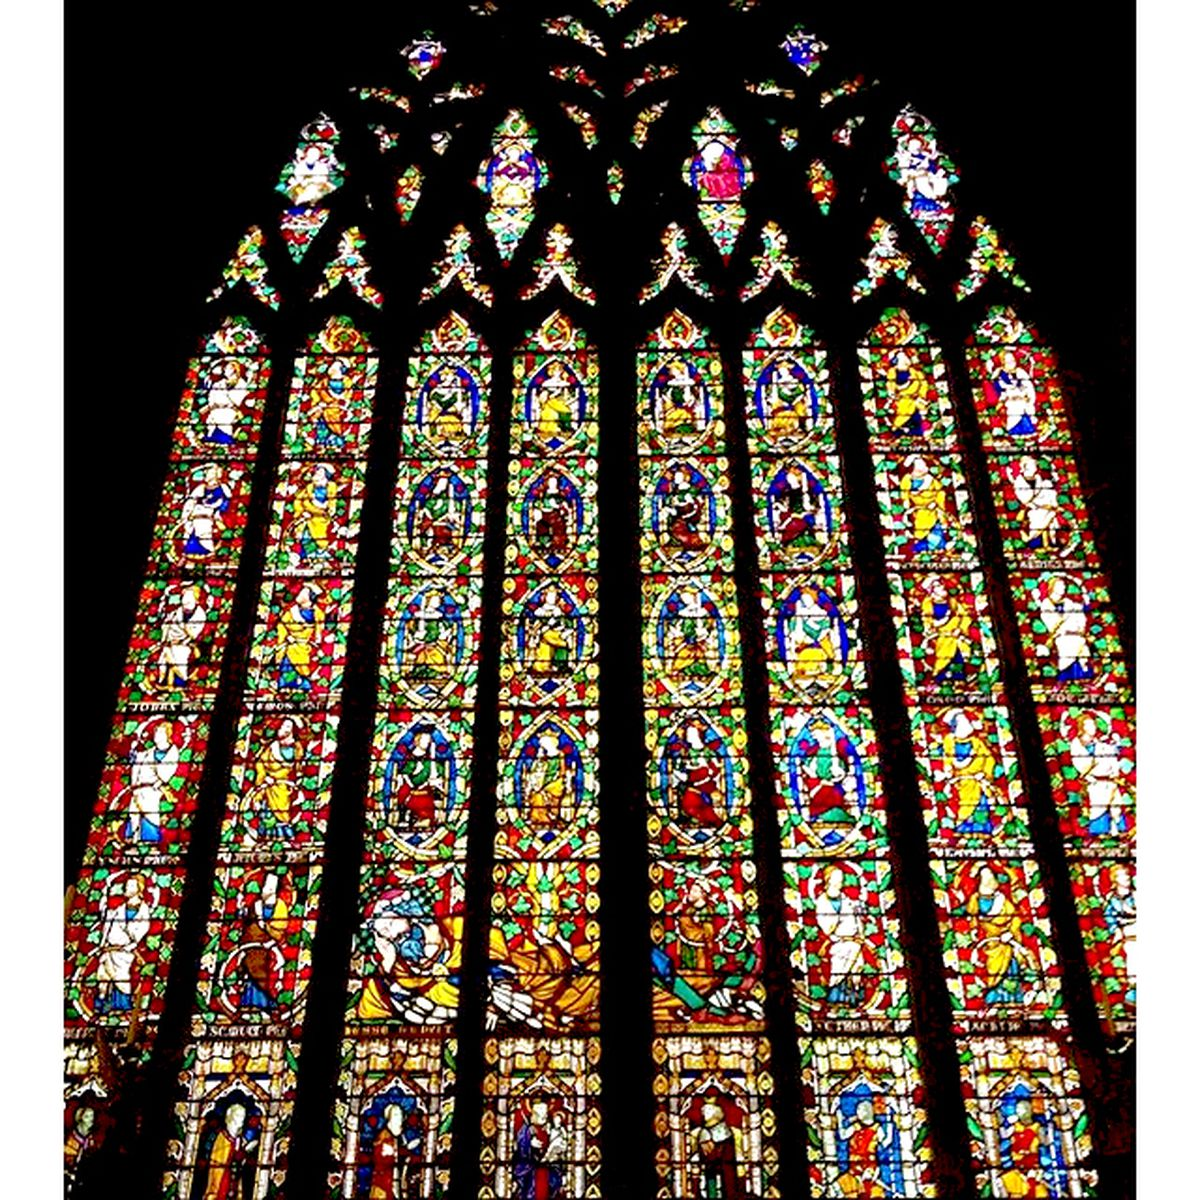 The famous stained glass windows in St Mary's Church Shrewsbury (credit: @ferch_hapus)